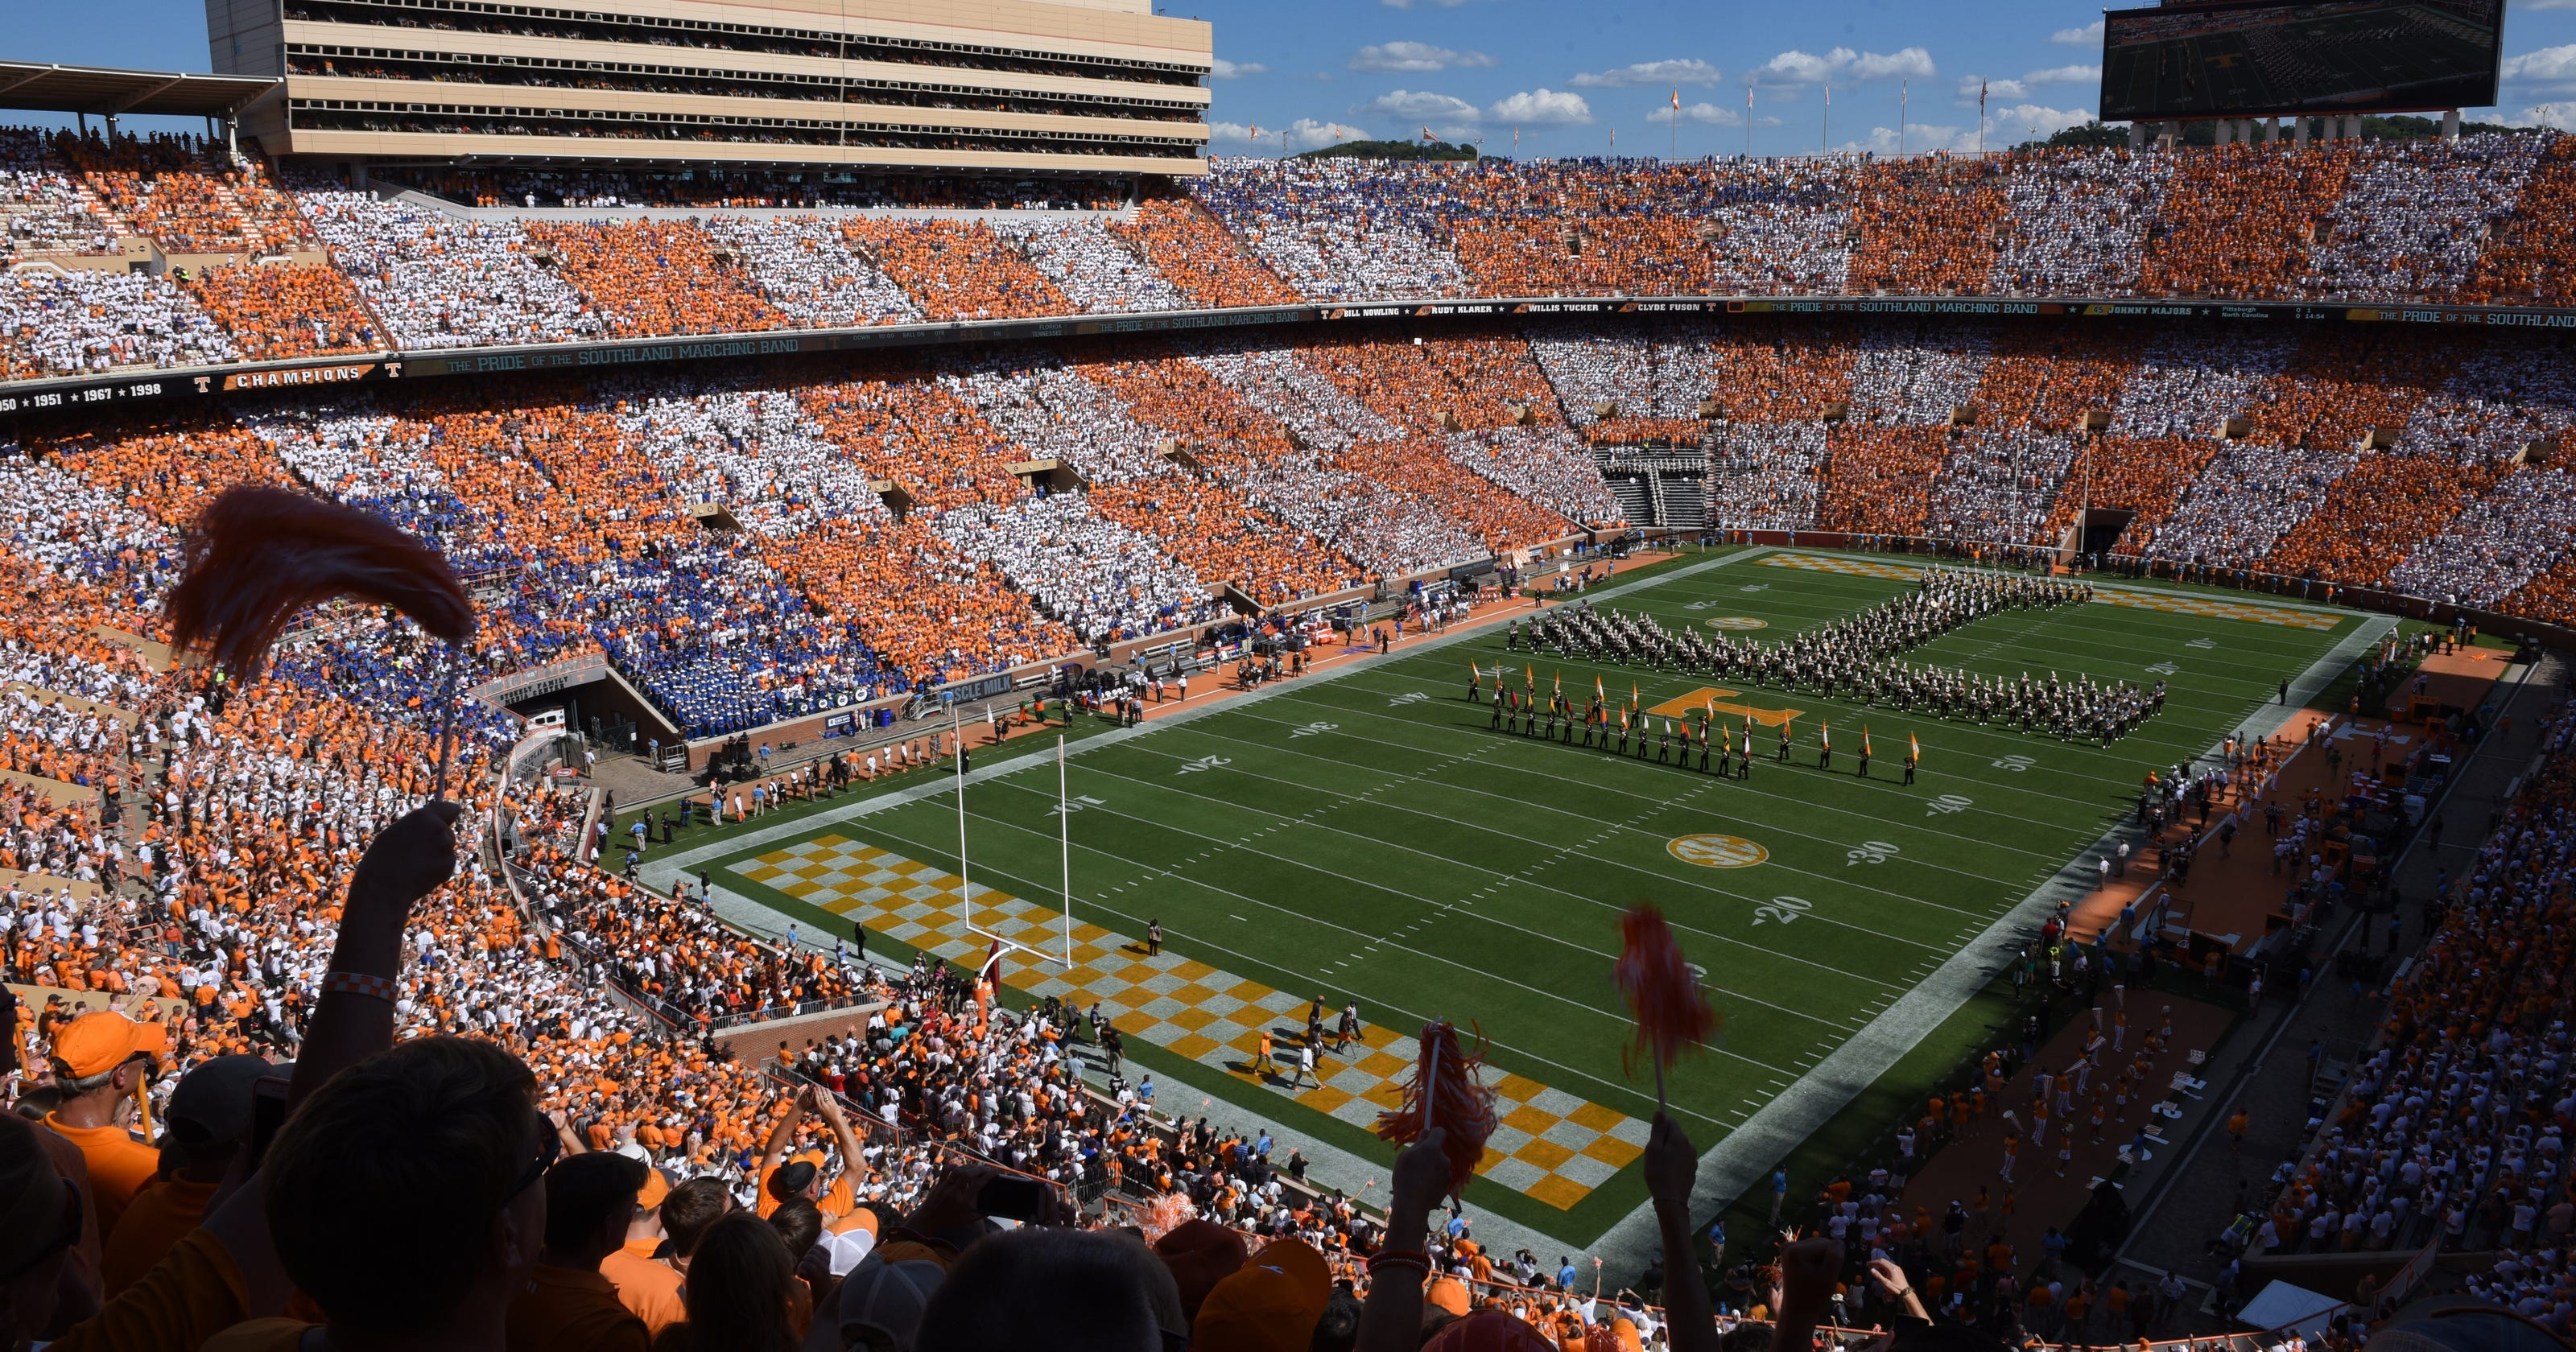 Tennessee football: When Neyland Stadium renovation will start